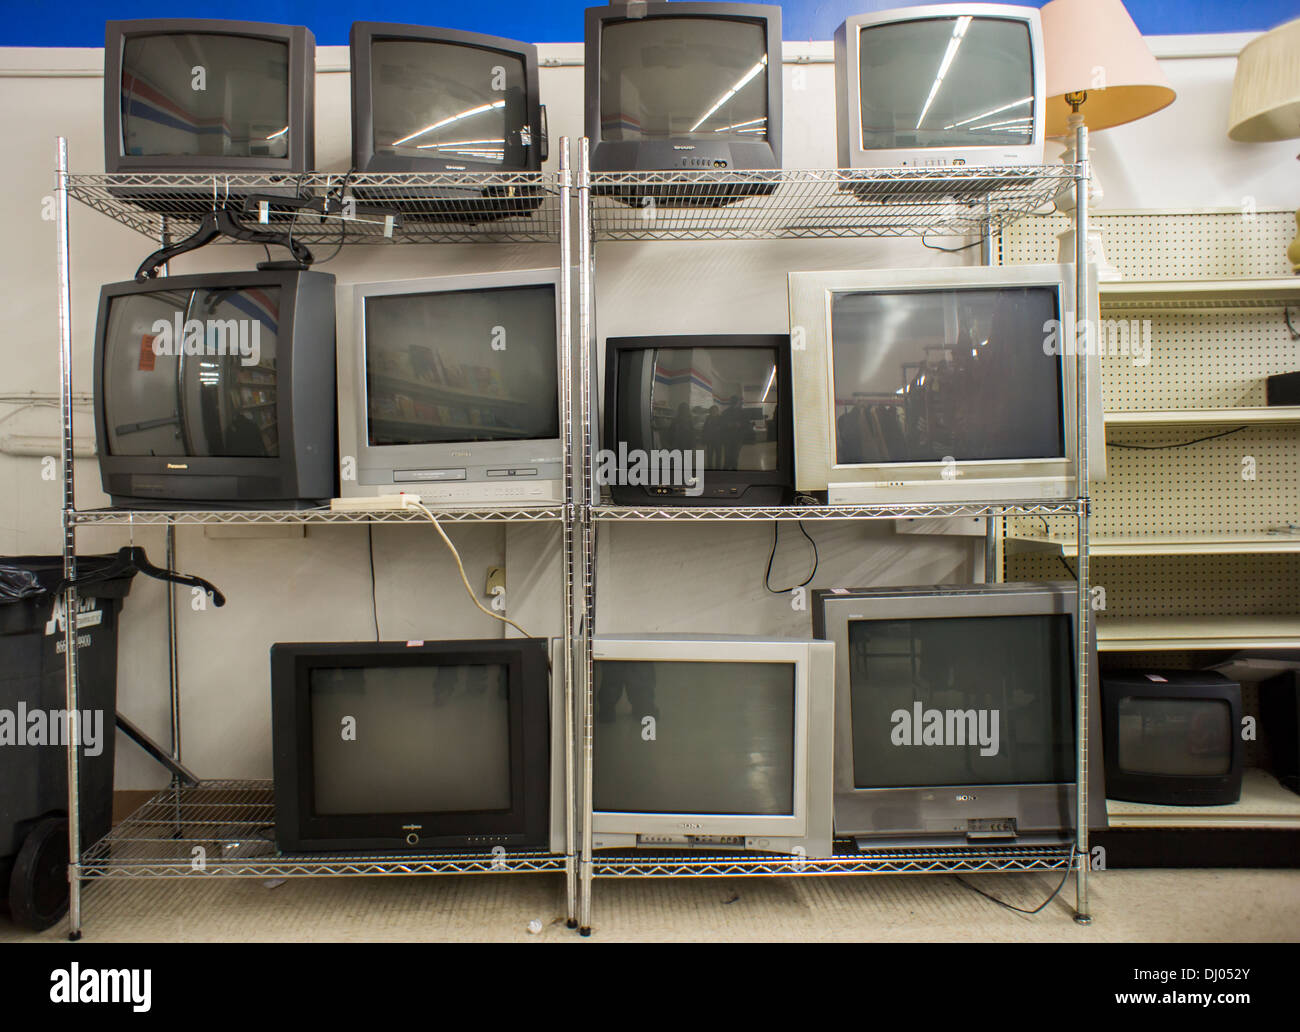 second hand crt analog television sets are seen lined up for sale in stock photo 62698915 alamy. Black Bedroom Furniture Sets. Home Design Ideas